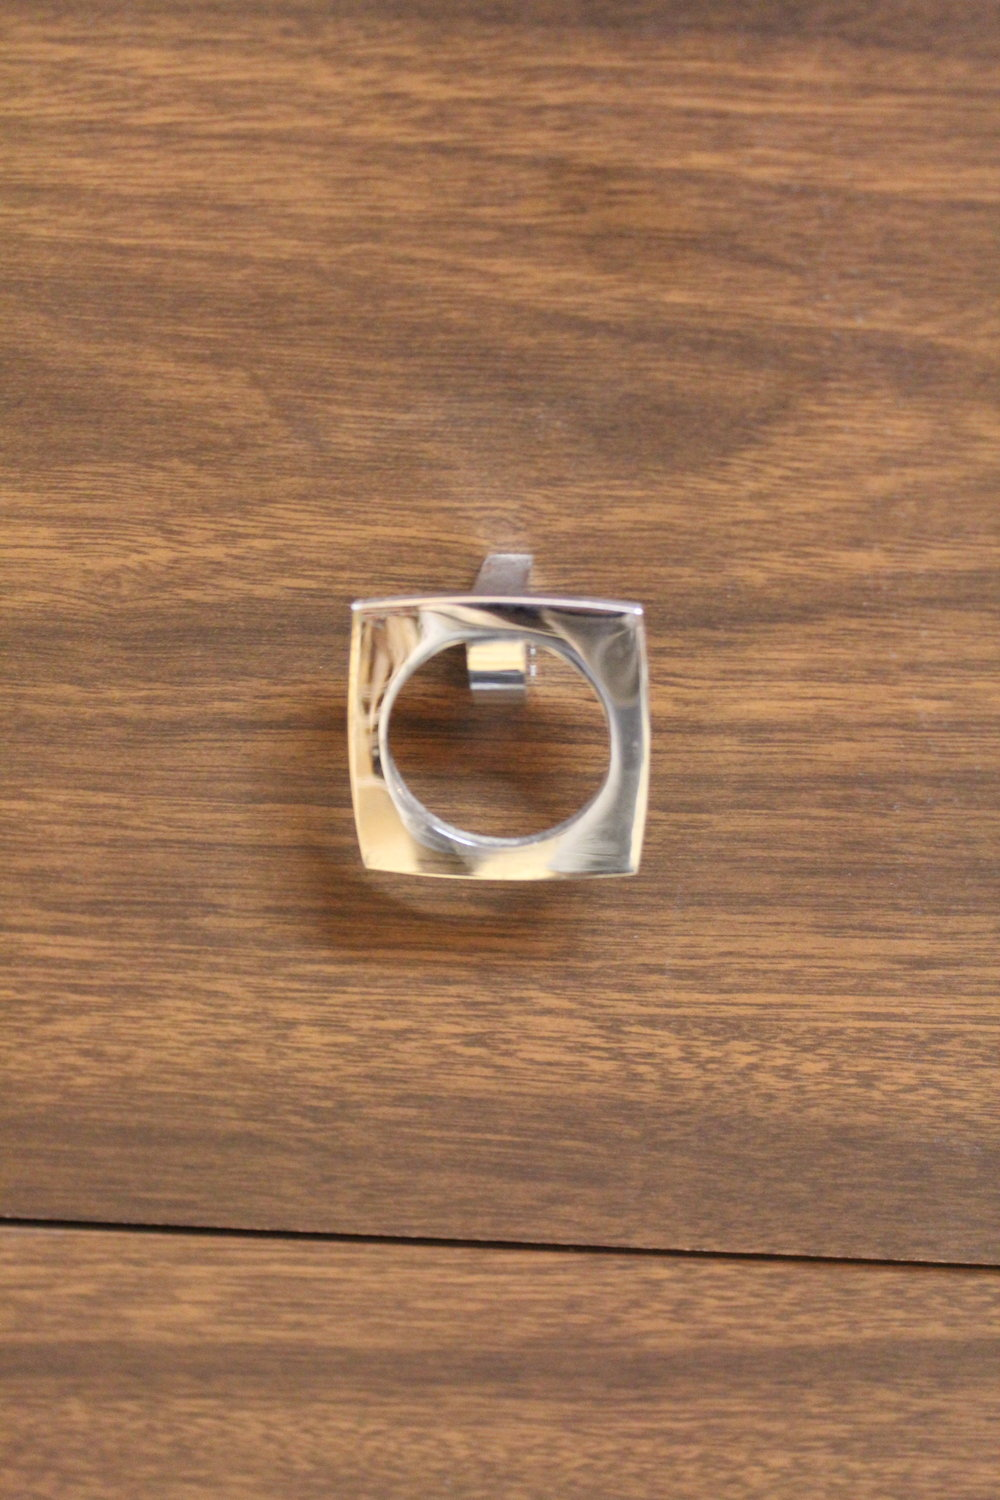 Silver square drawer pull on midcentury modern bureau